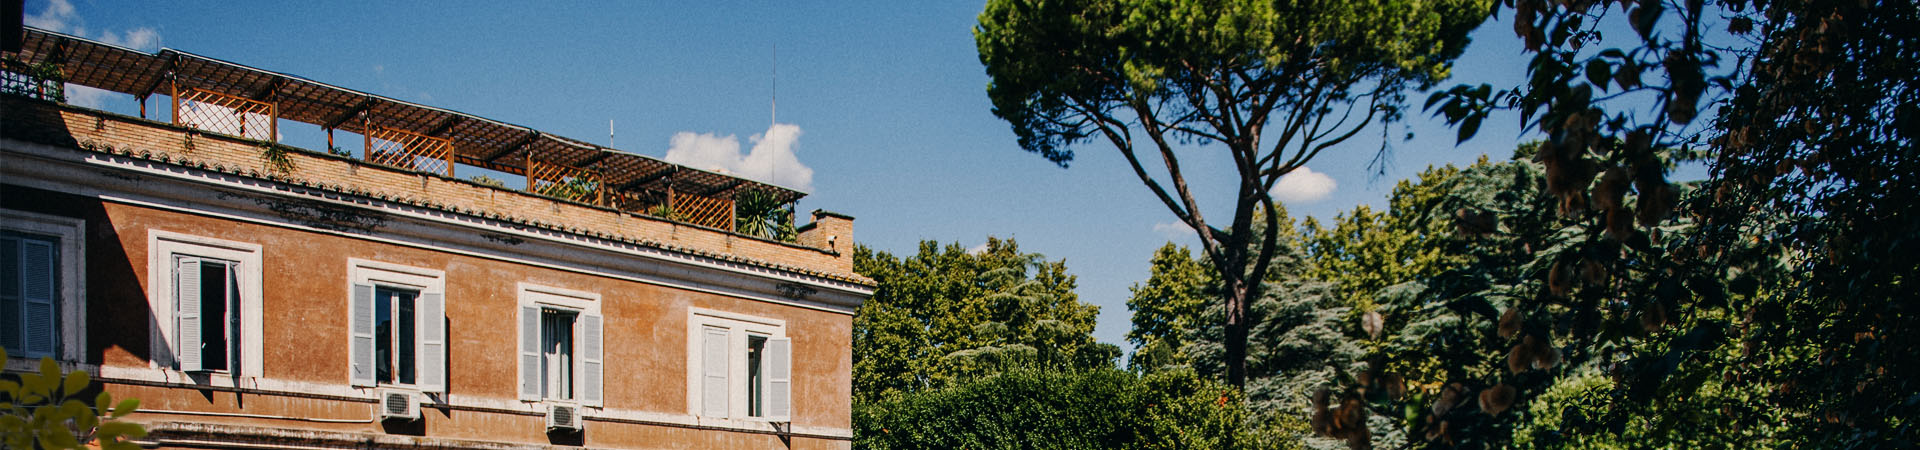 Degree Programs at JCU | Study Abroad in Rome